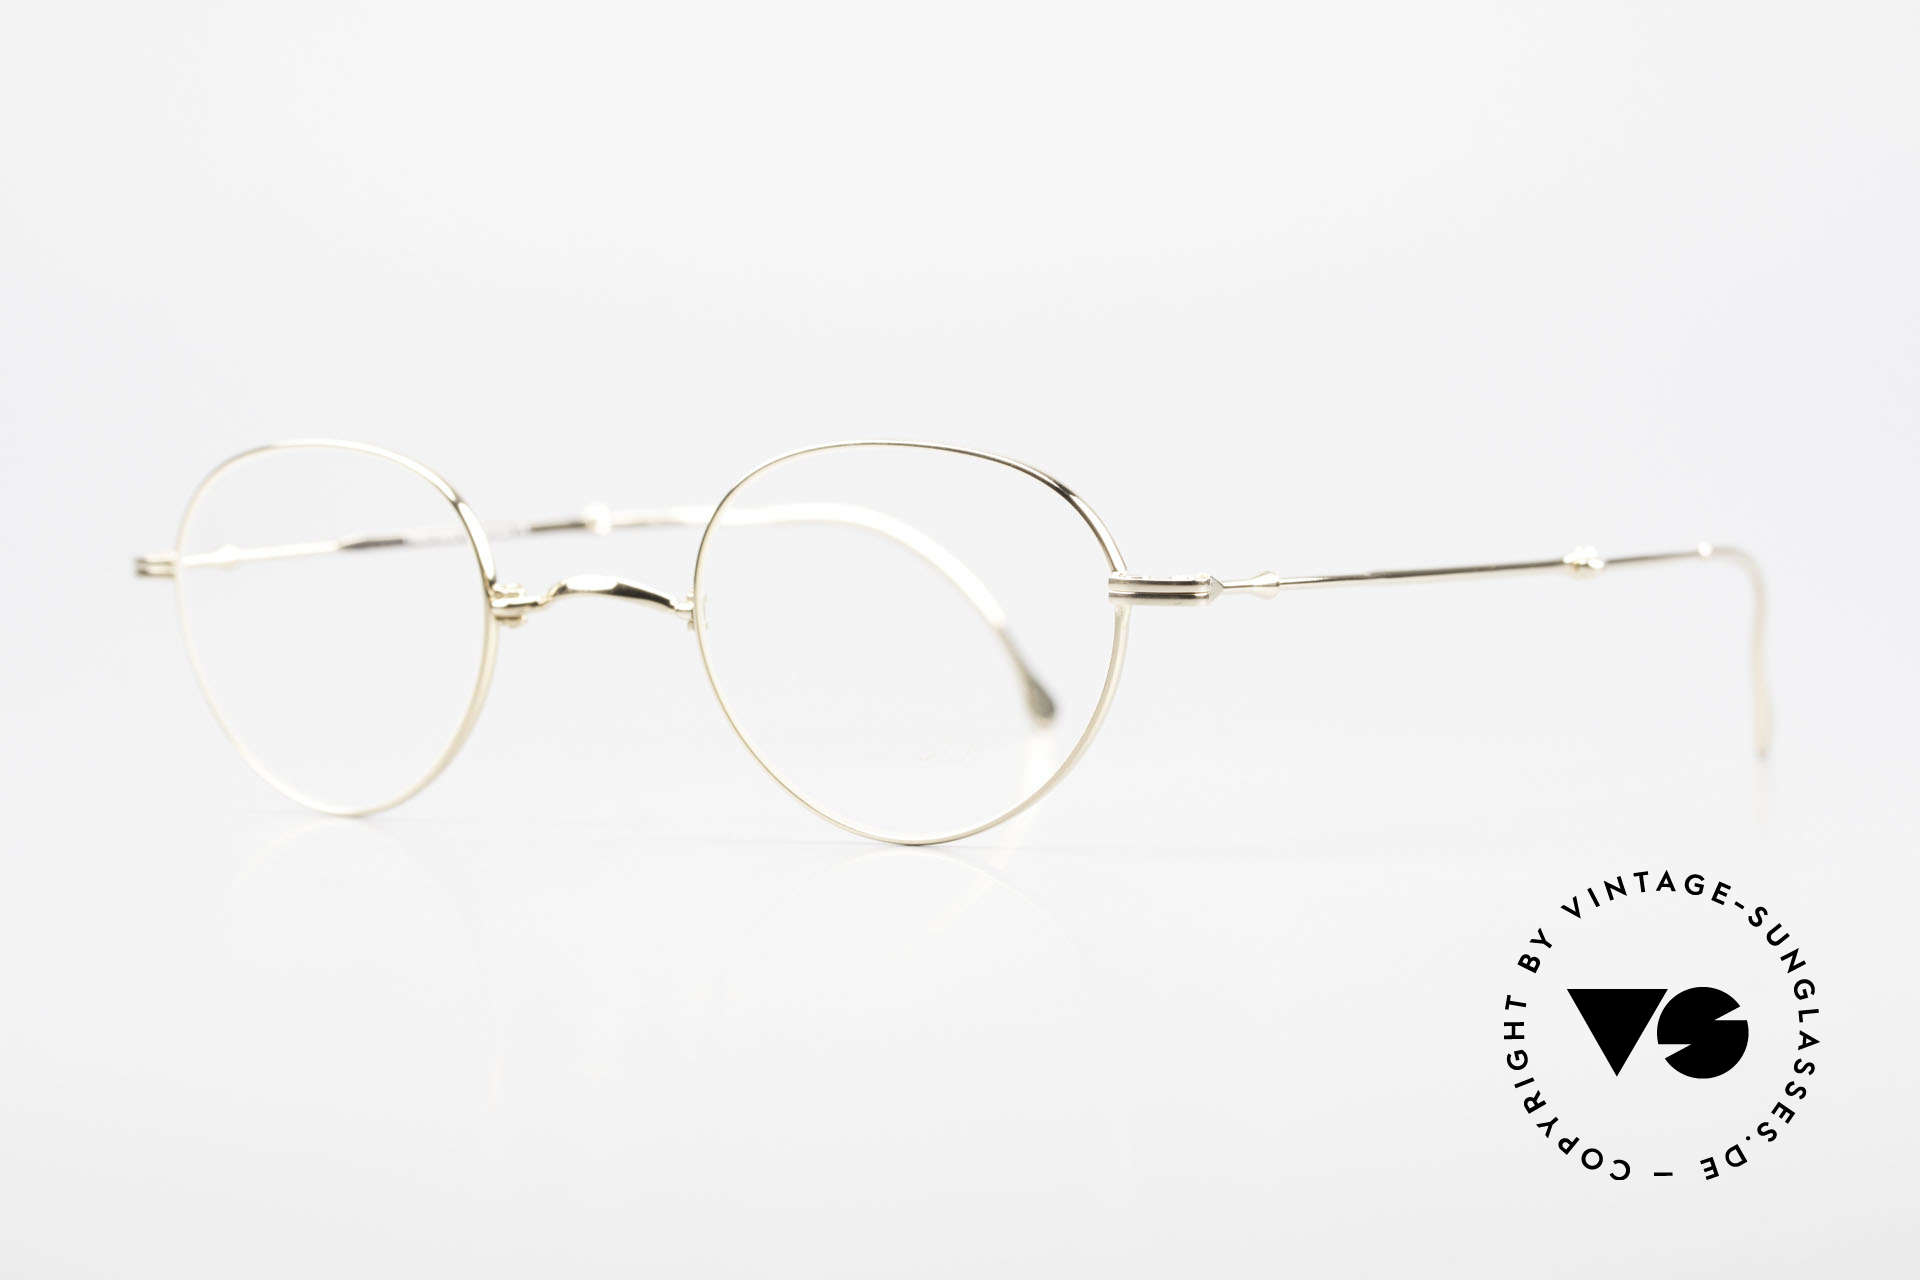 """Lunor XXV Folding 03 Lunor Foldable Panto Glasses, well-known for the """"W-bridge"""" & the plain frame designs, Made for Men and Women"""